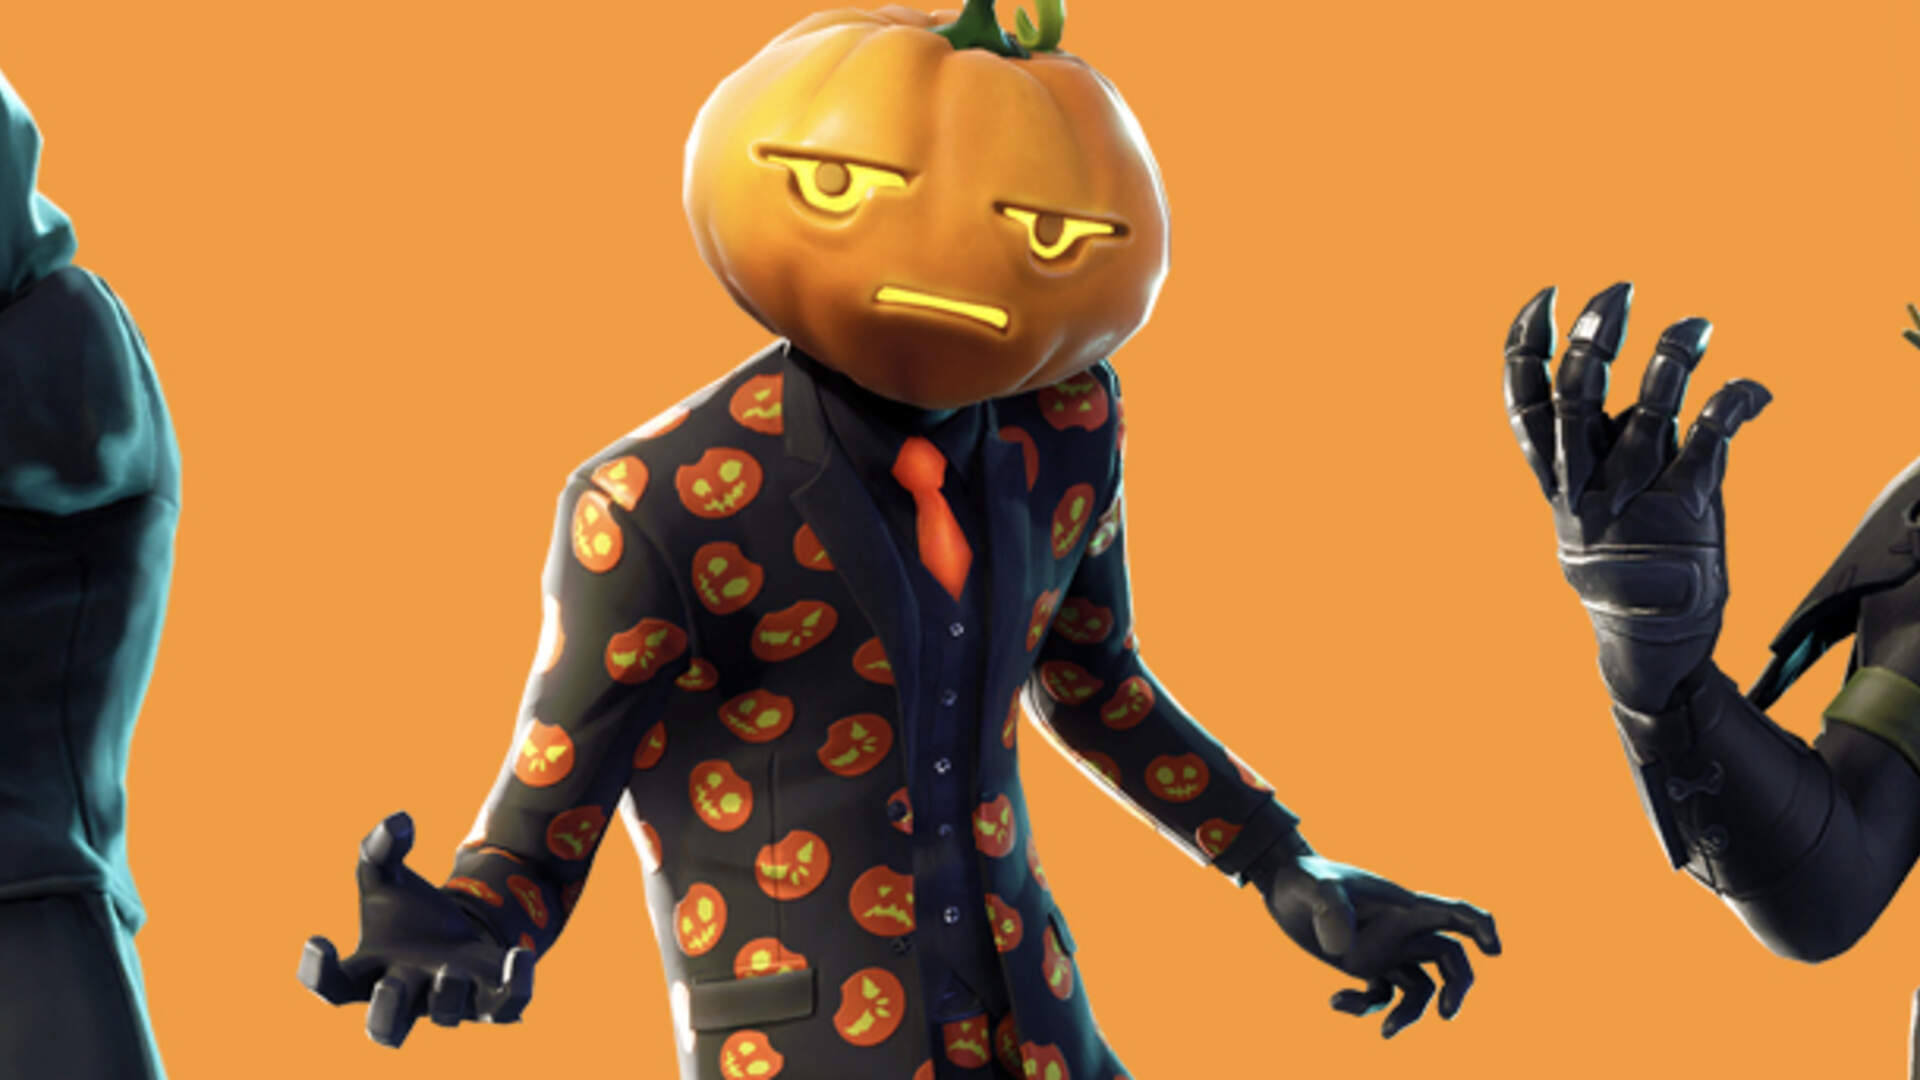 Halloween Fortnite Skins Leak, Including a Will Smith-Inspired Emote and a SNL-Related Skin